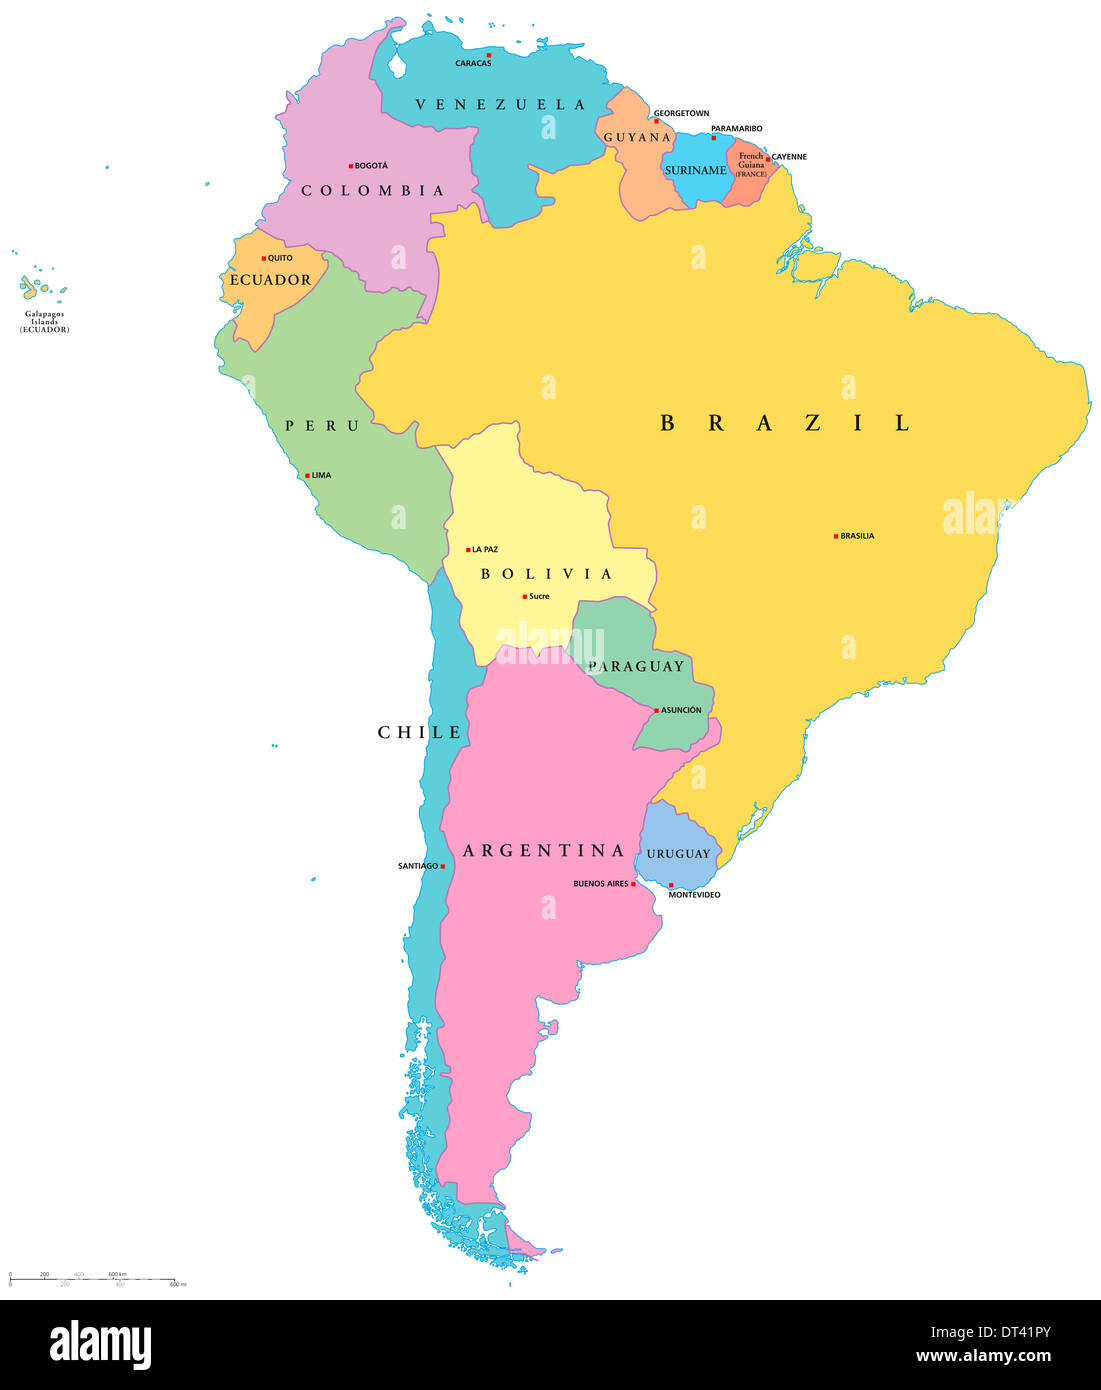 Political Map Of South America With Single Statescapitals And - South america map labeled